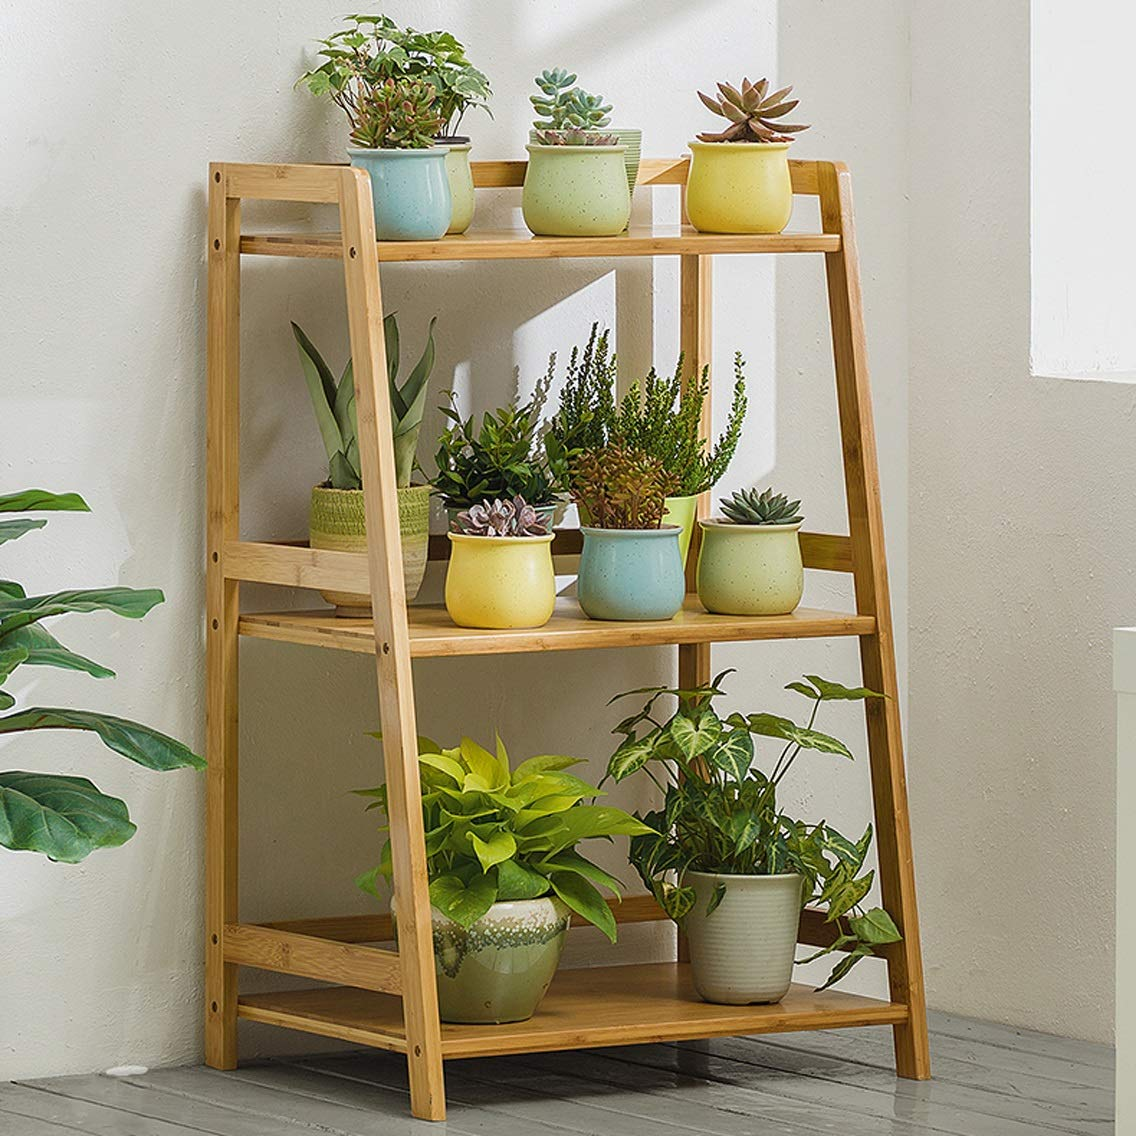 HLQW Bamboo Flower Shelf, Floor, Indoor Multi Storey Balcony, verde Lounge Soggiorno Flower Rack.